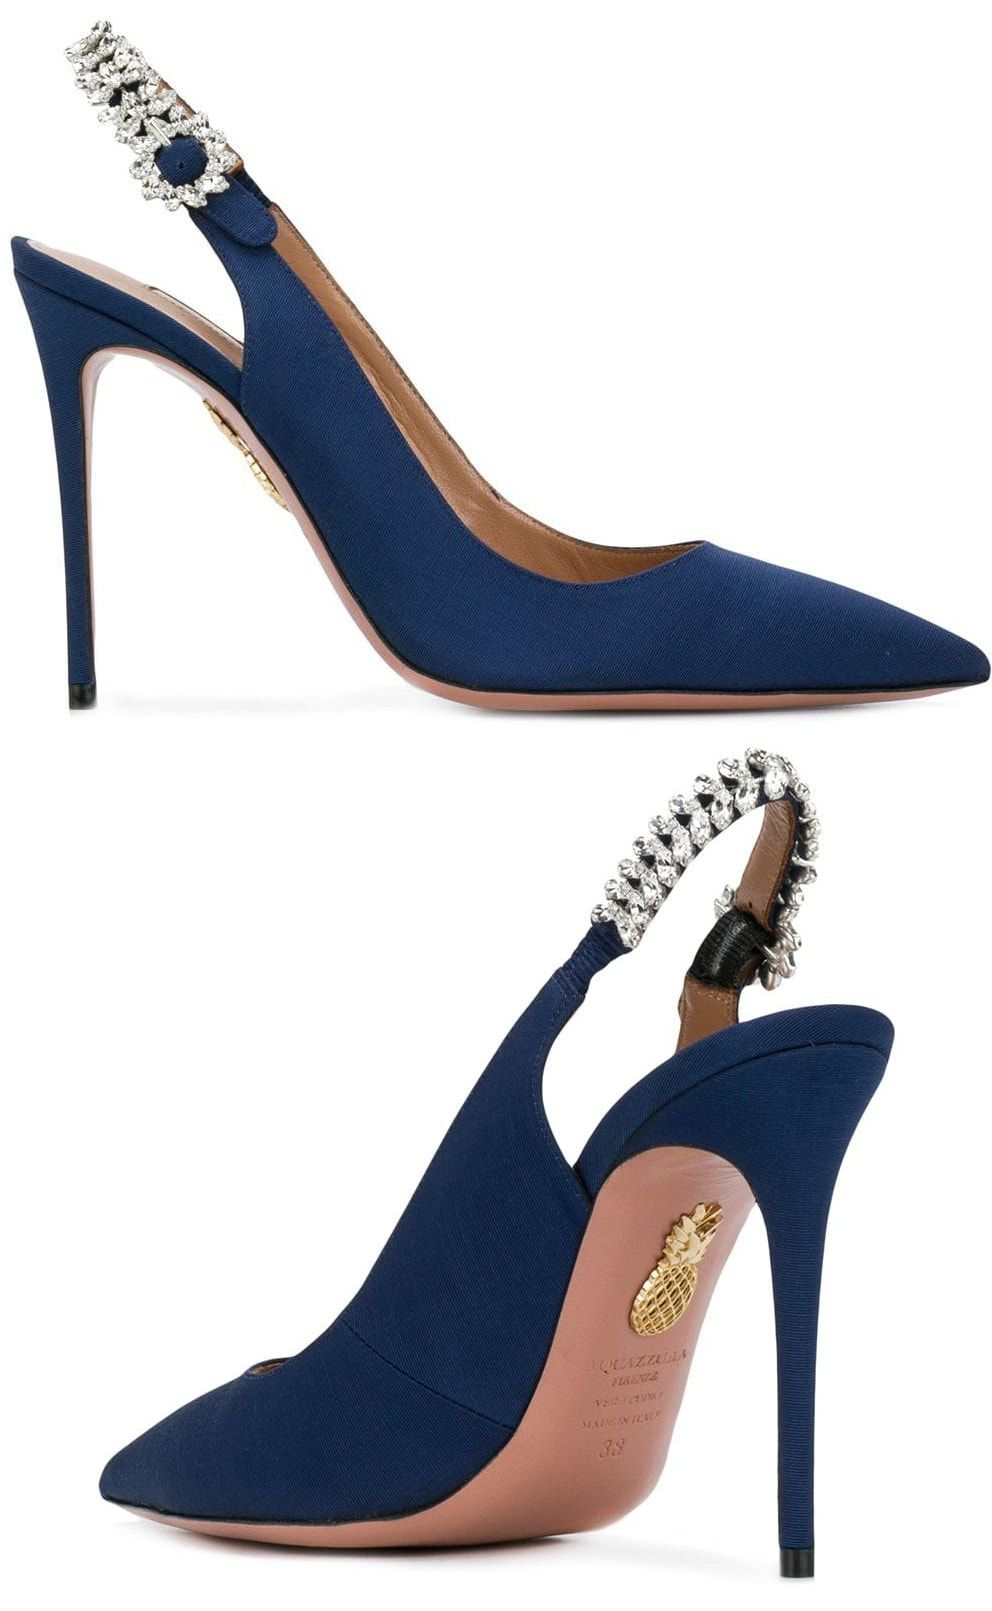 35e21715618 9 6 2018 - 100 Days to Peace Concert - Meghan s Aquazzura  Portrait of Lady   sling pumps in admiral blue (£640)